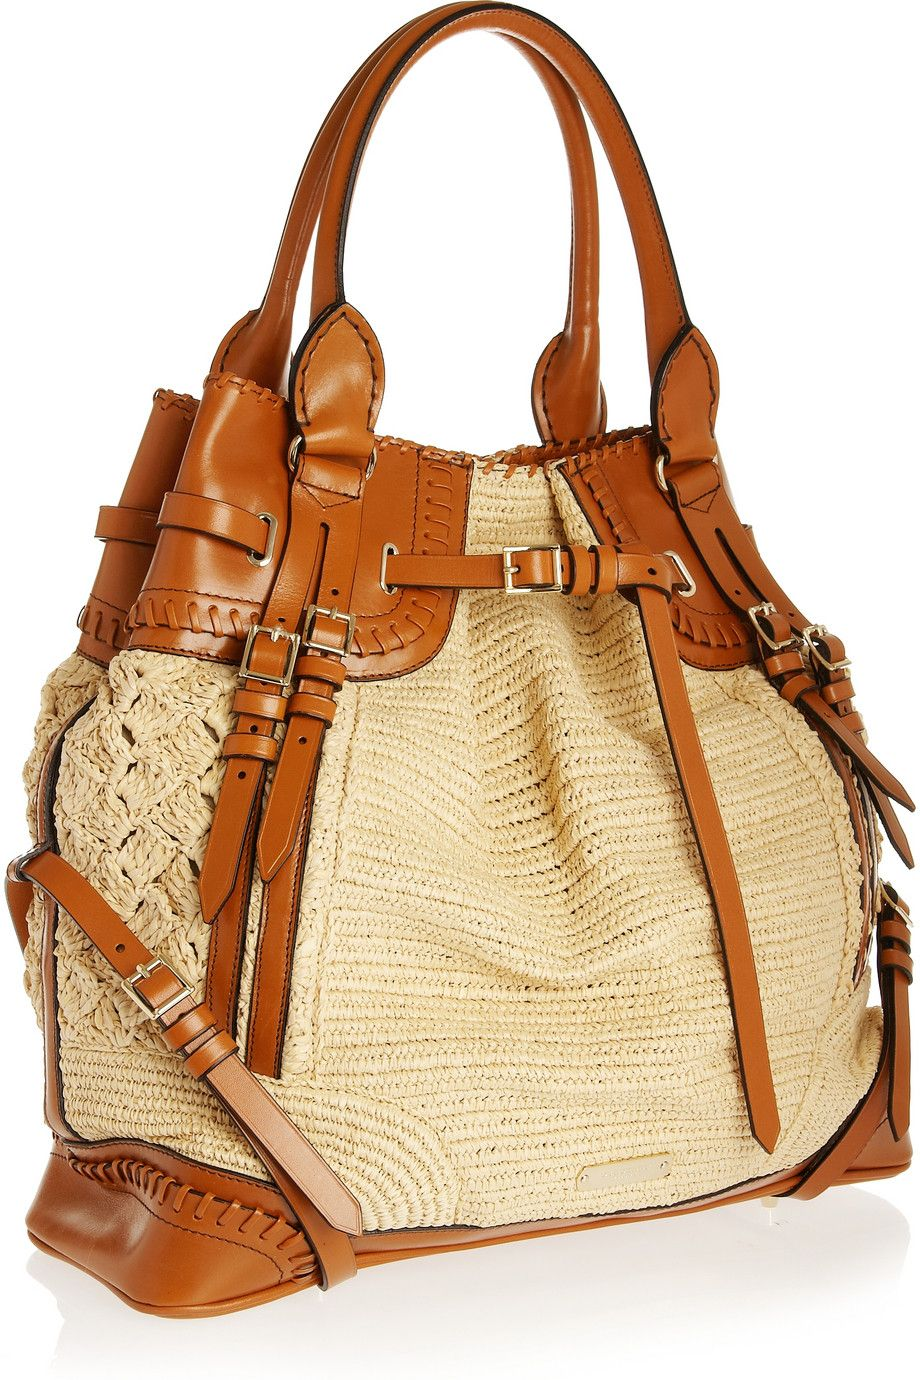 Burberry - Woven raffia-effect and leather bag